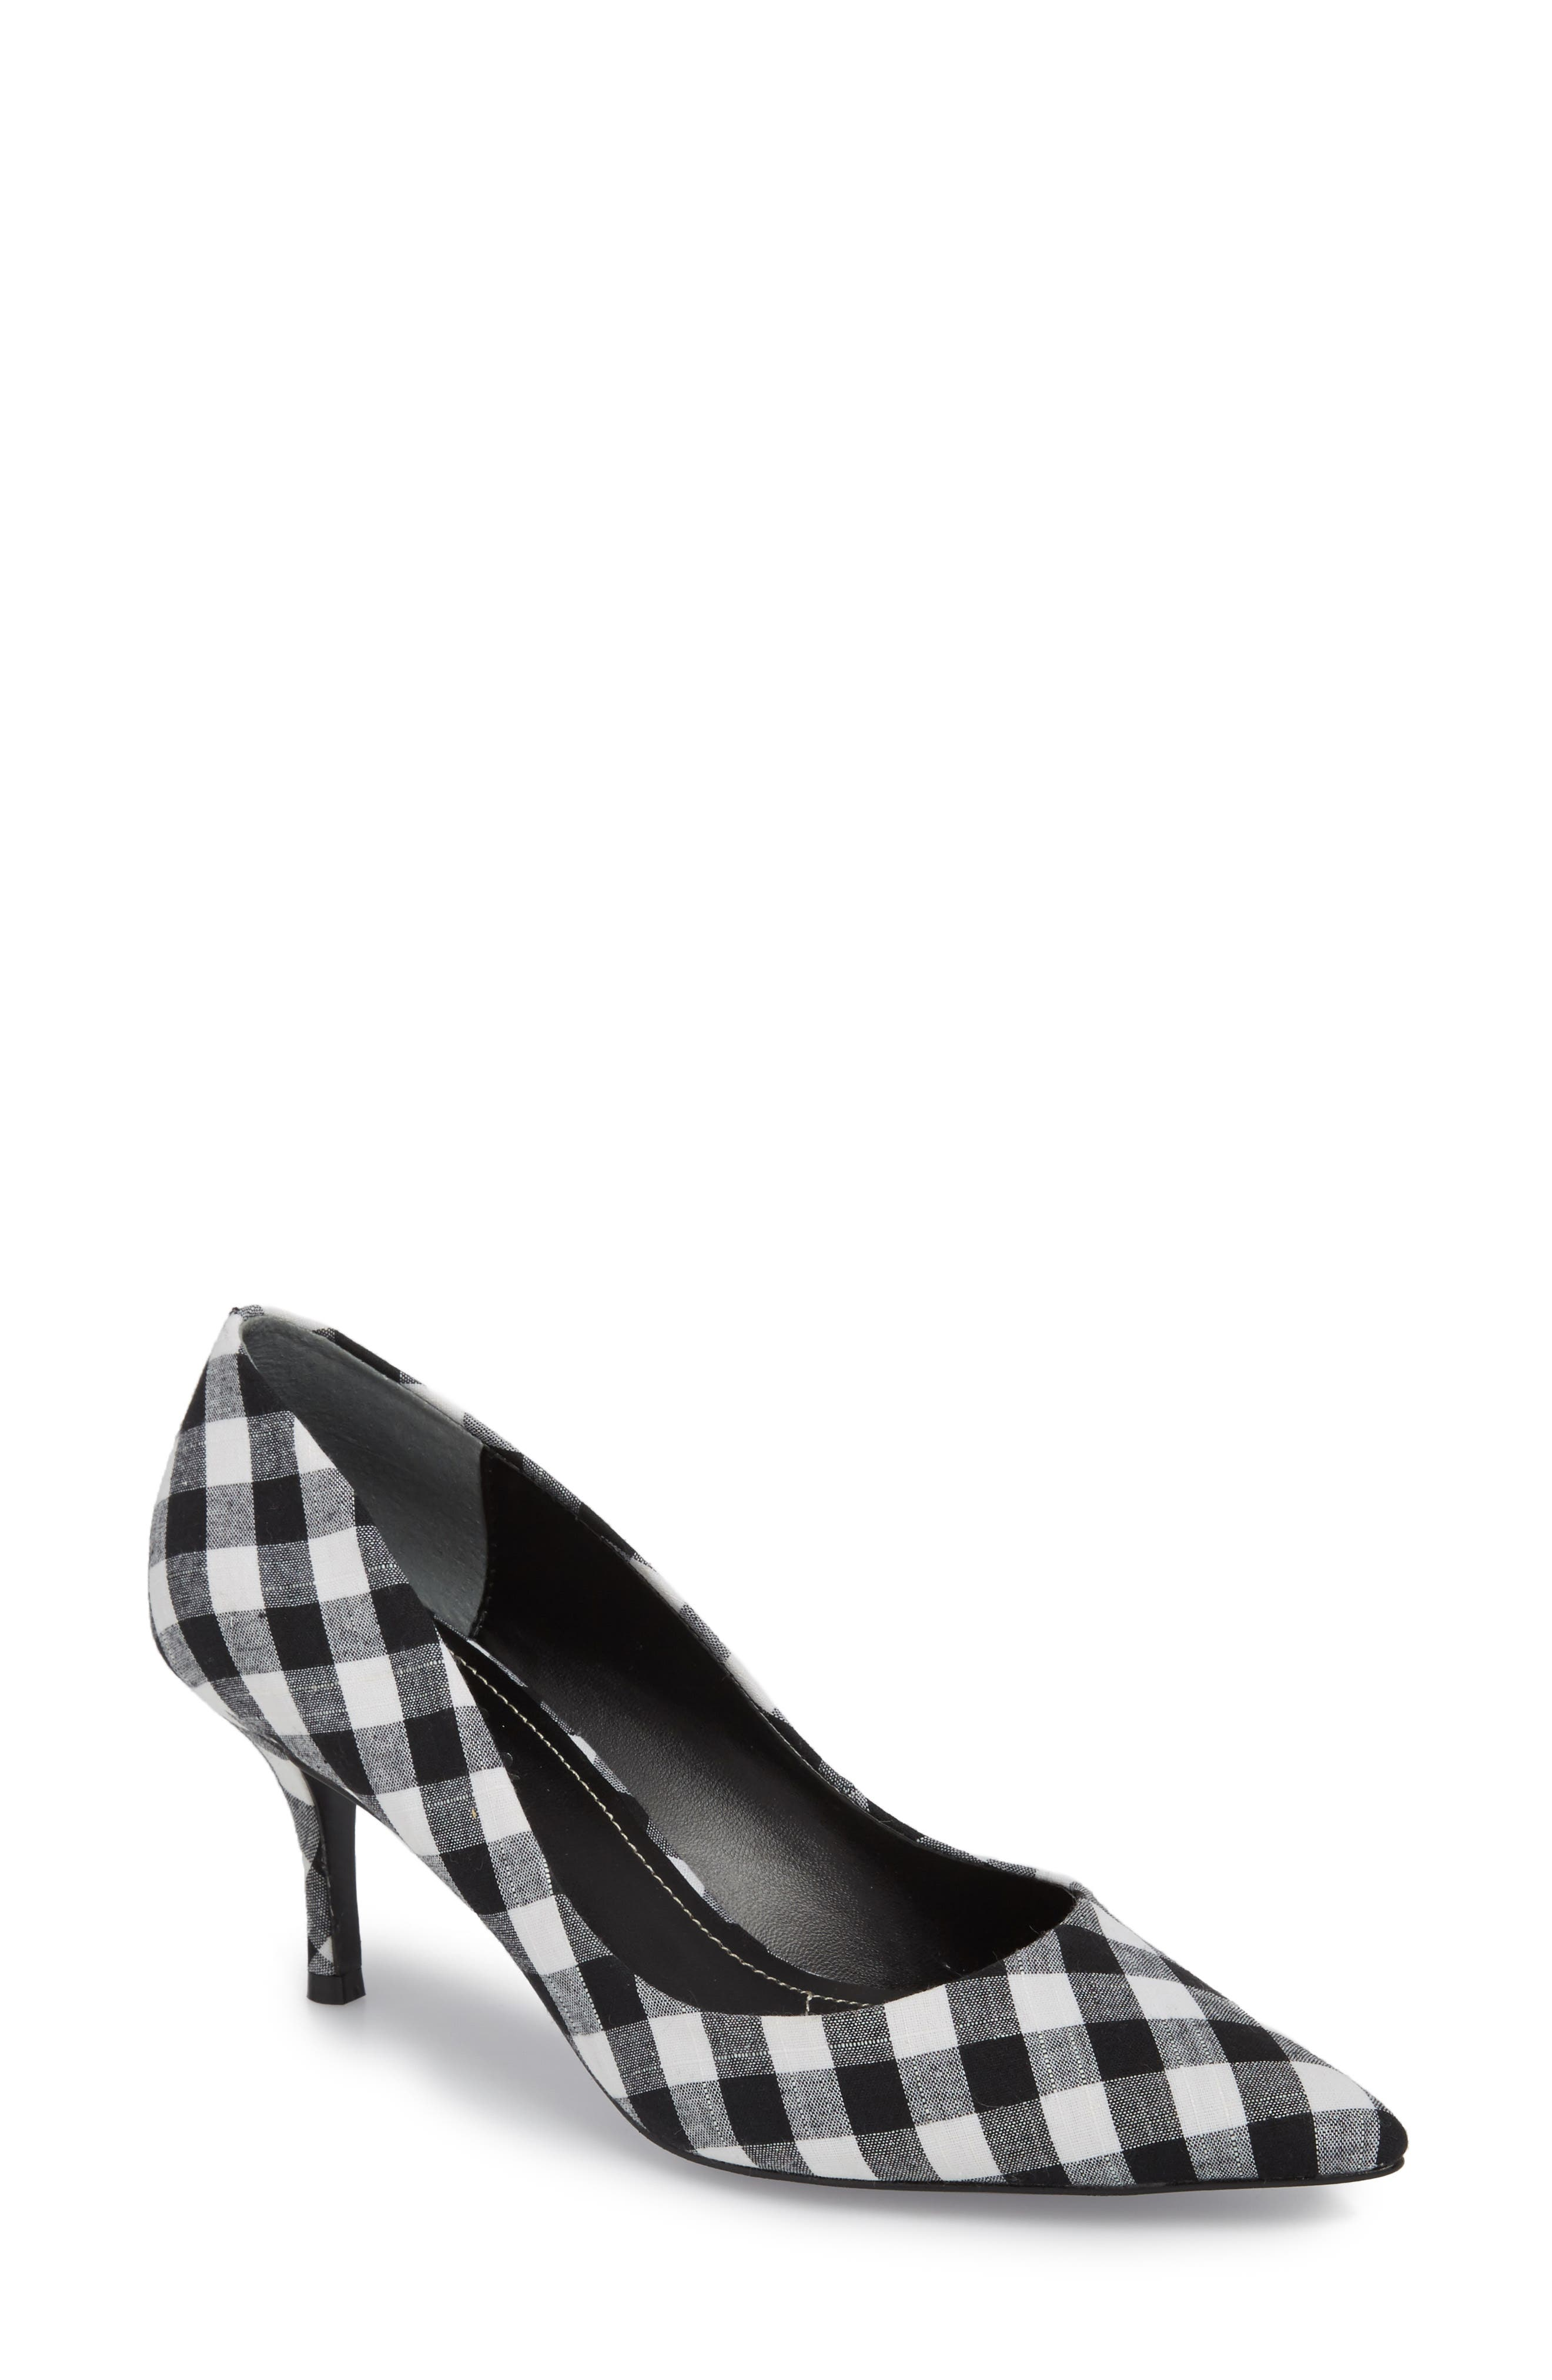 Addie Pump,                         Main,                         color, BLACK/ WHITE GINGHAM FABRIC